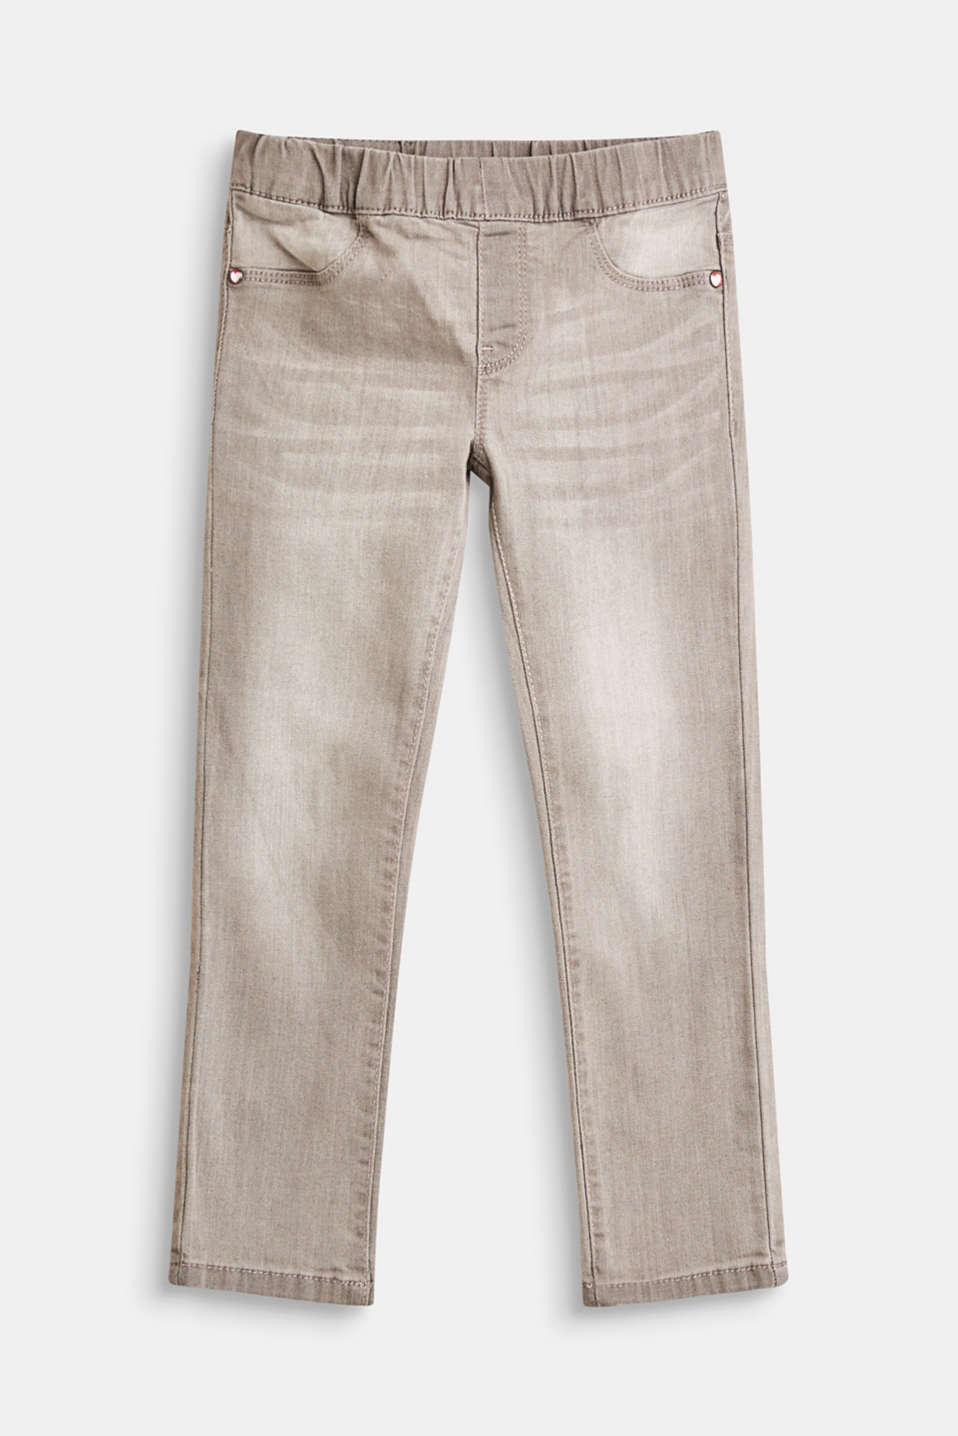 Esprit - Stretch jeggings in a cool shade of grey